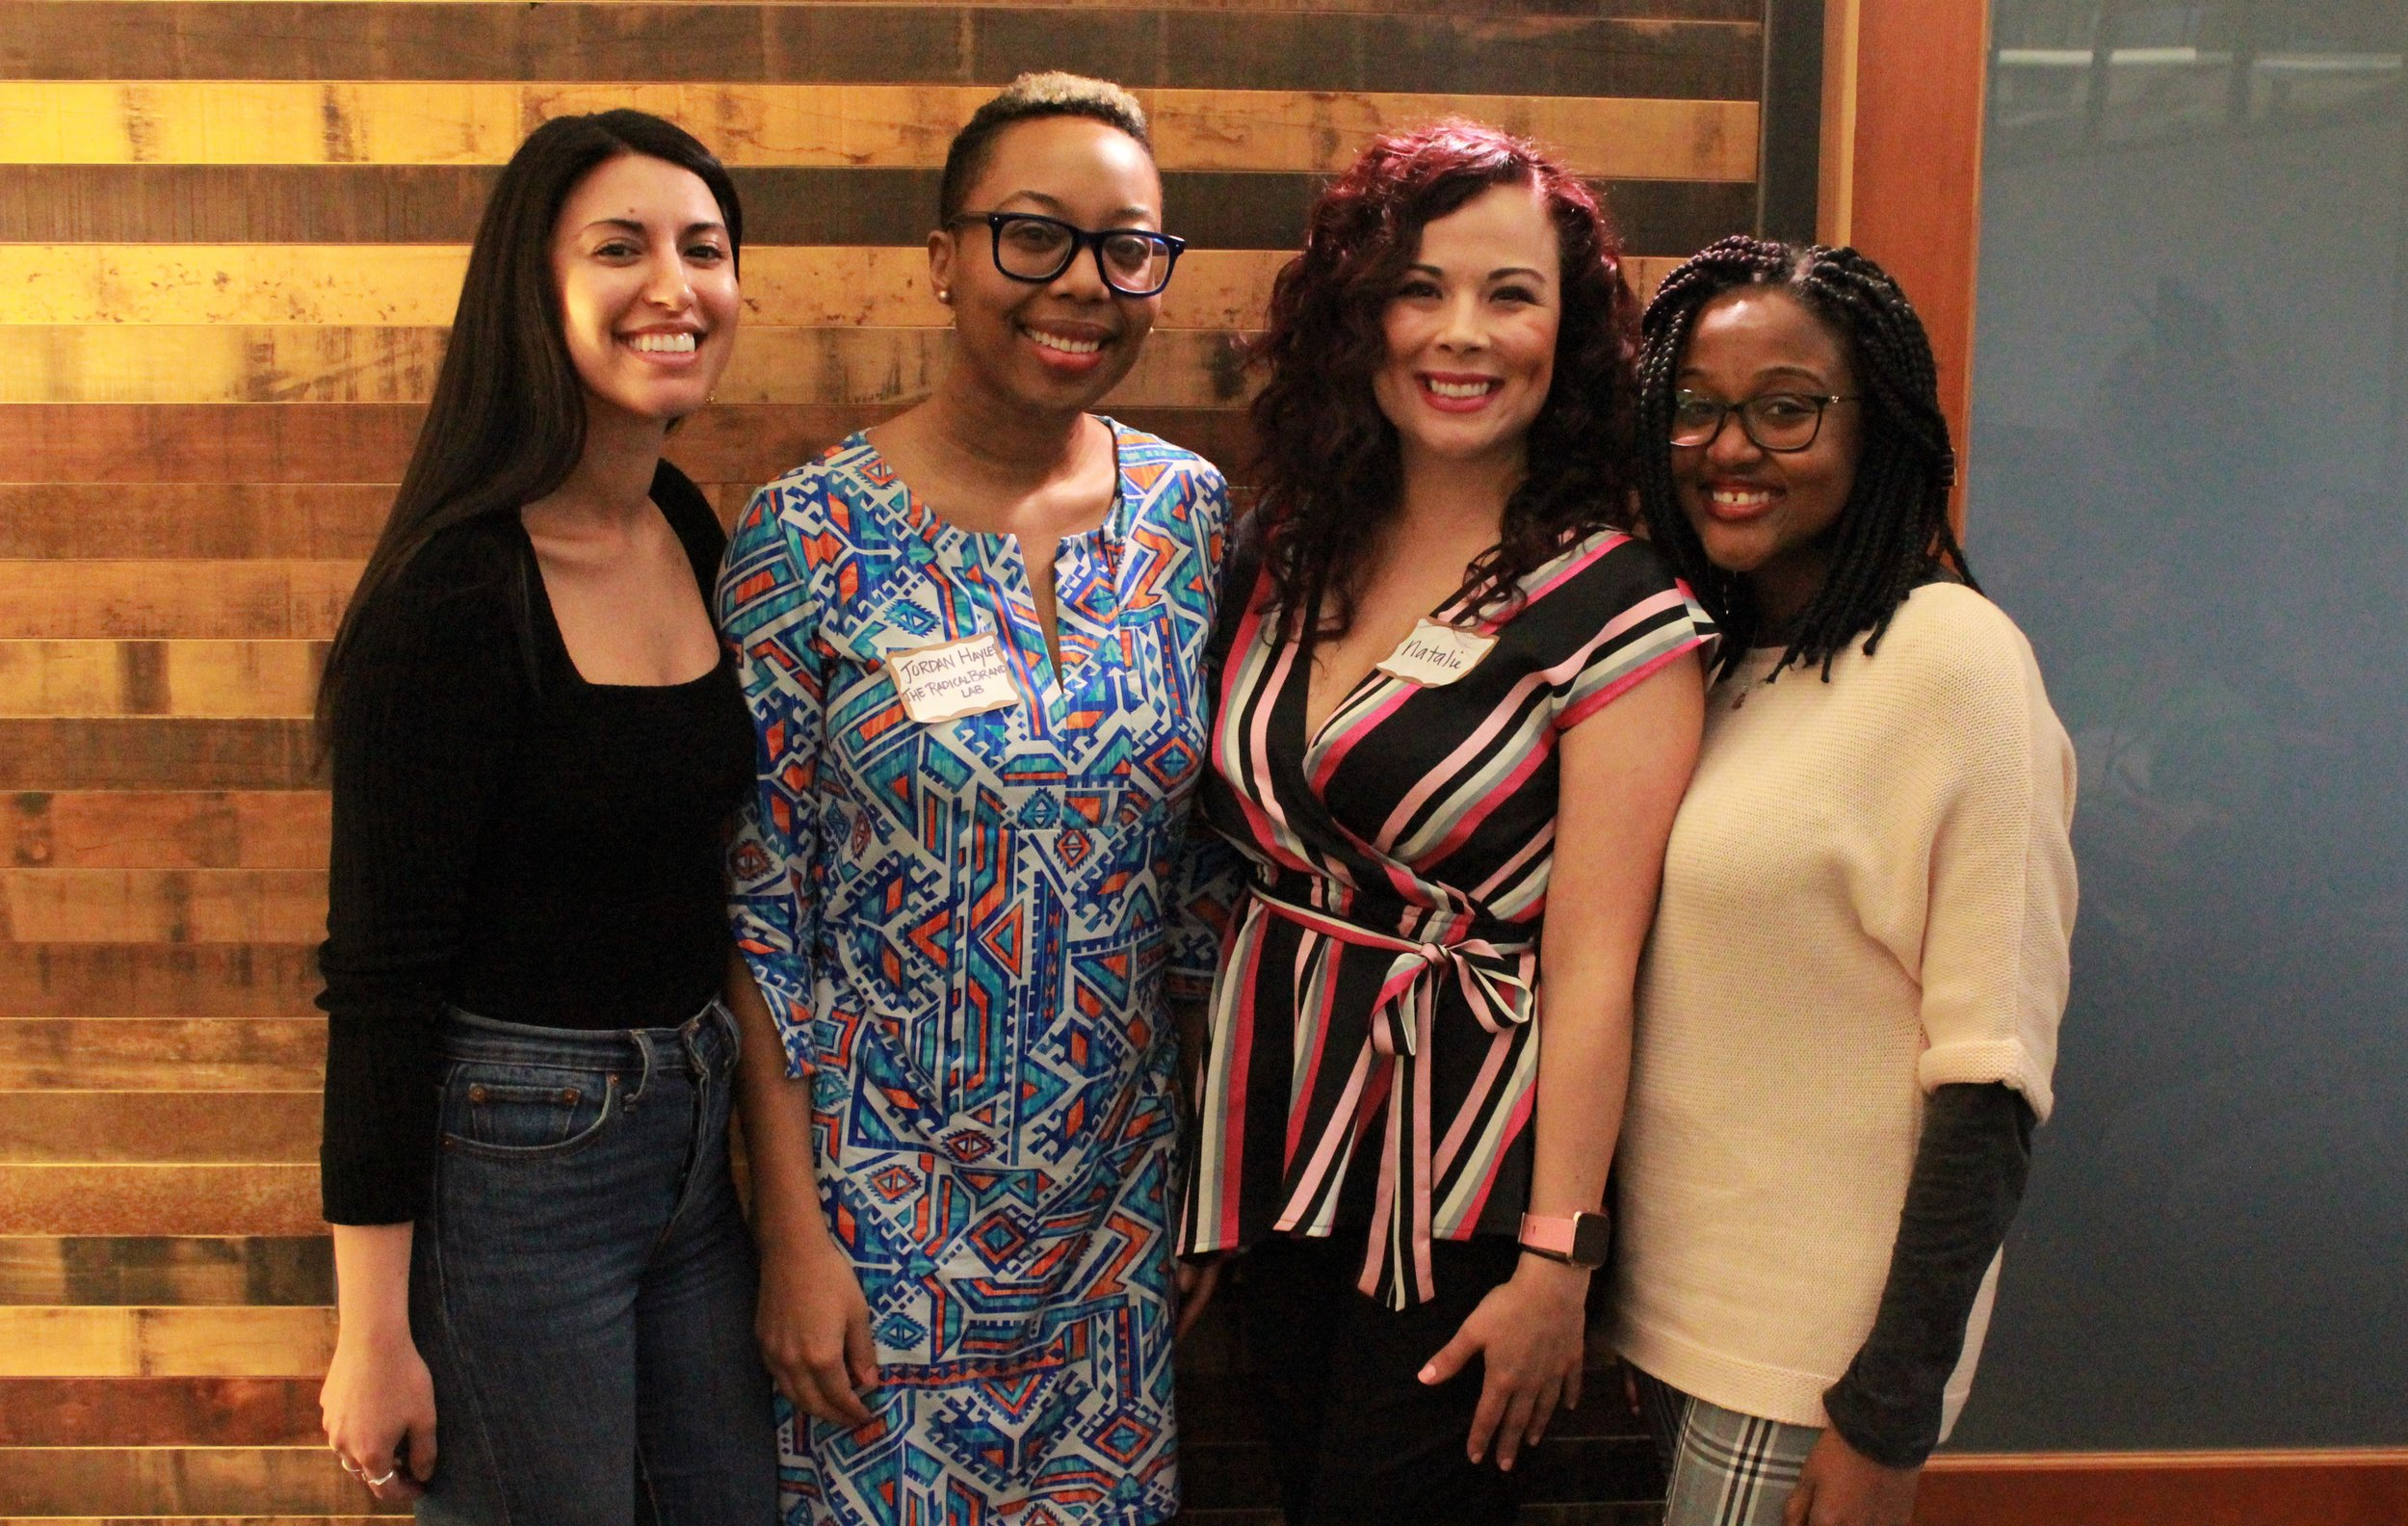 PDXWIT Creative Women in Tech @ R2C, 3/27/19, speakers Nadya, Jordan, Natalie, and Arlyne pose for a photo